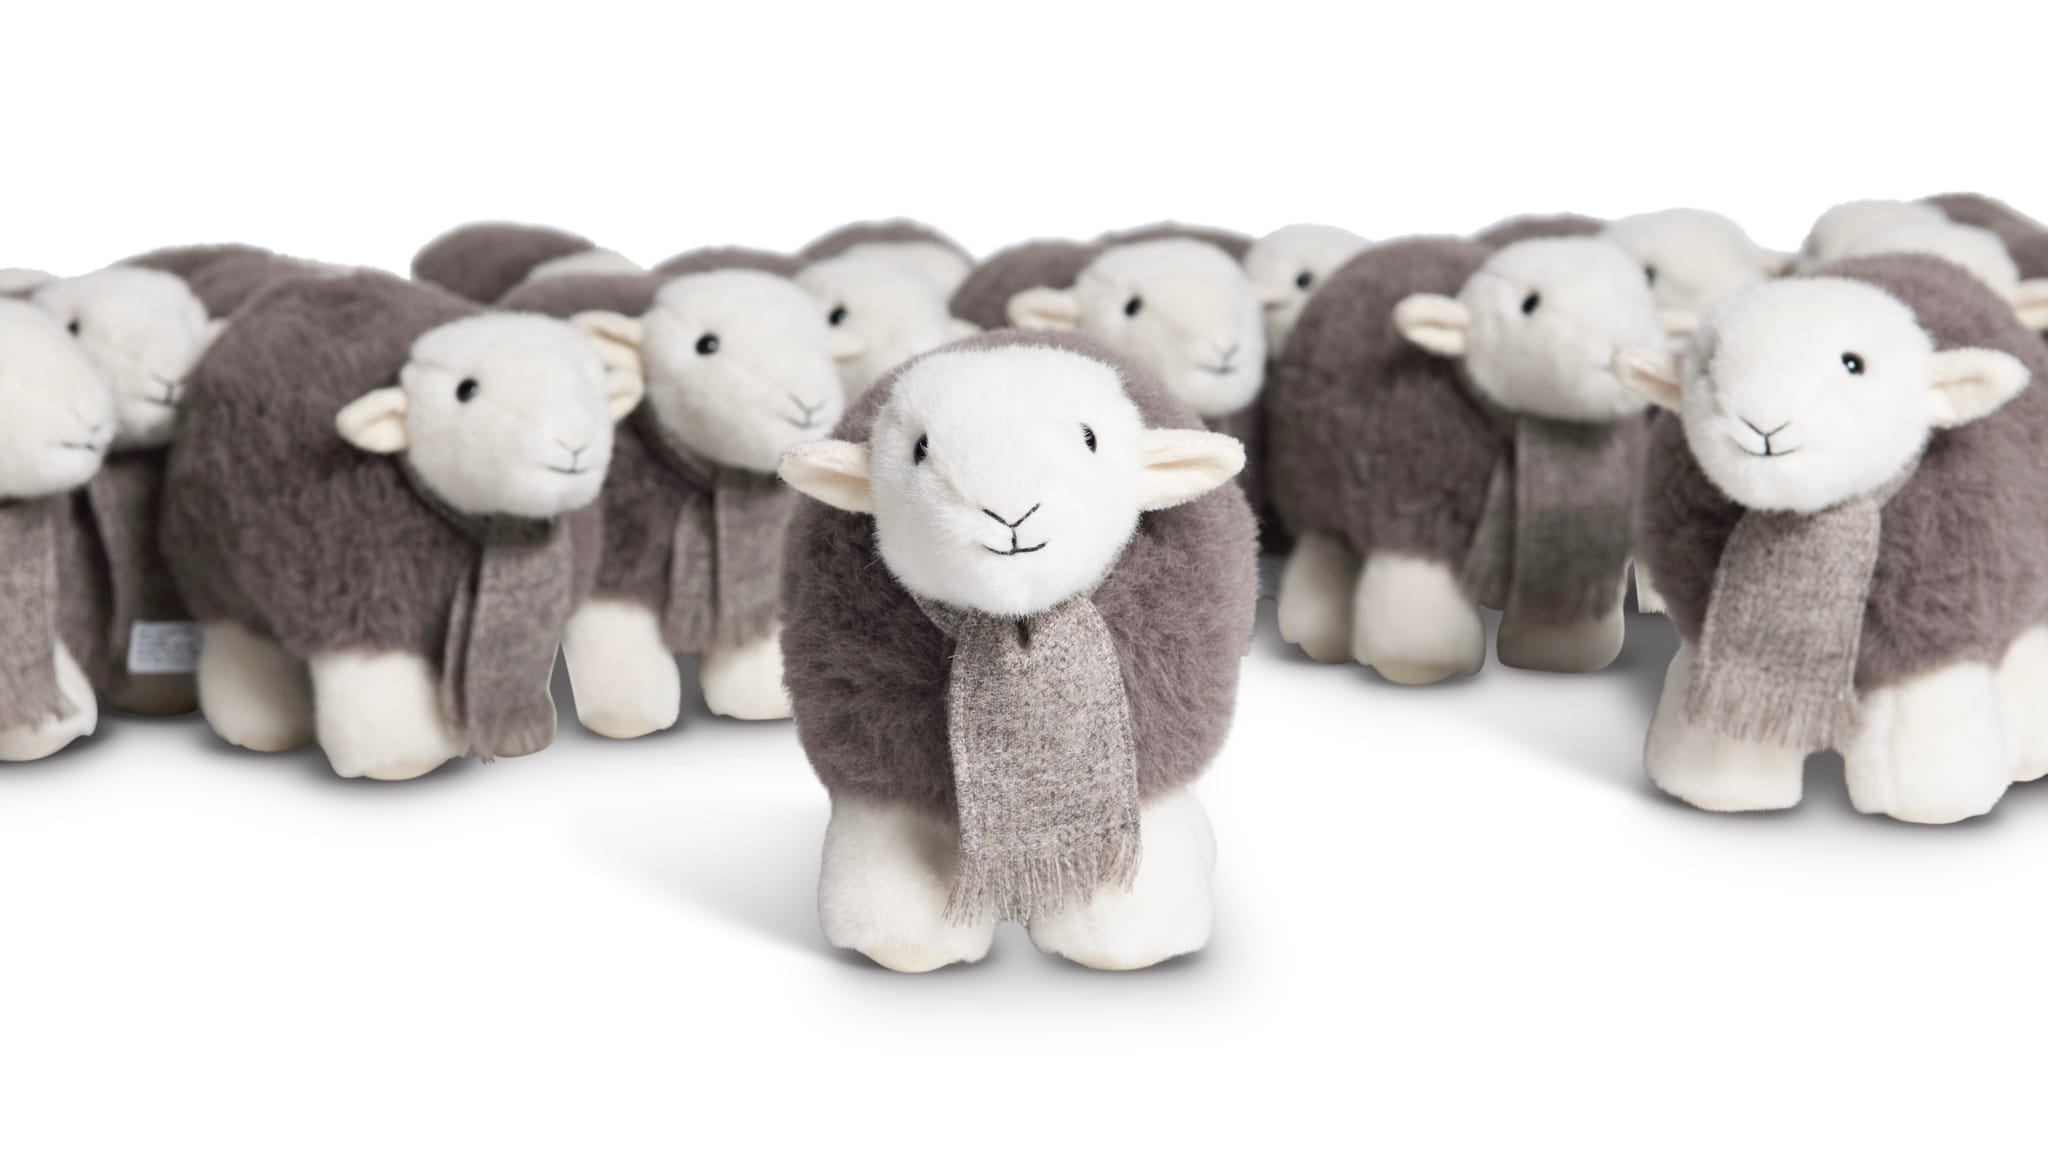 Launch photo of the original My Herdy limited edition, made by Merrythought